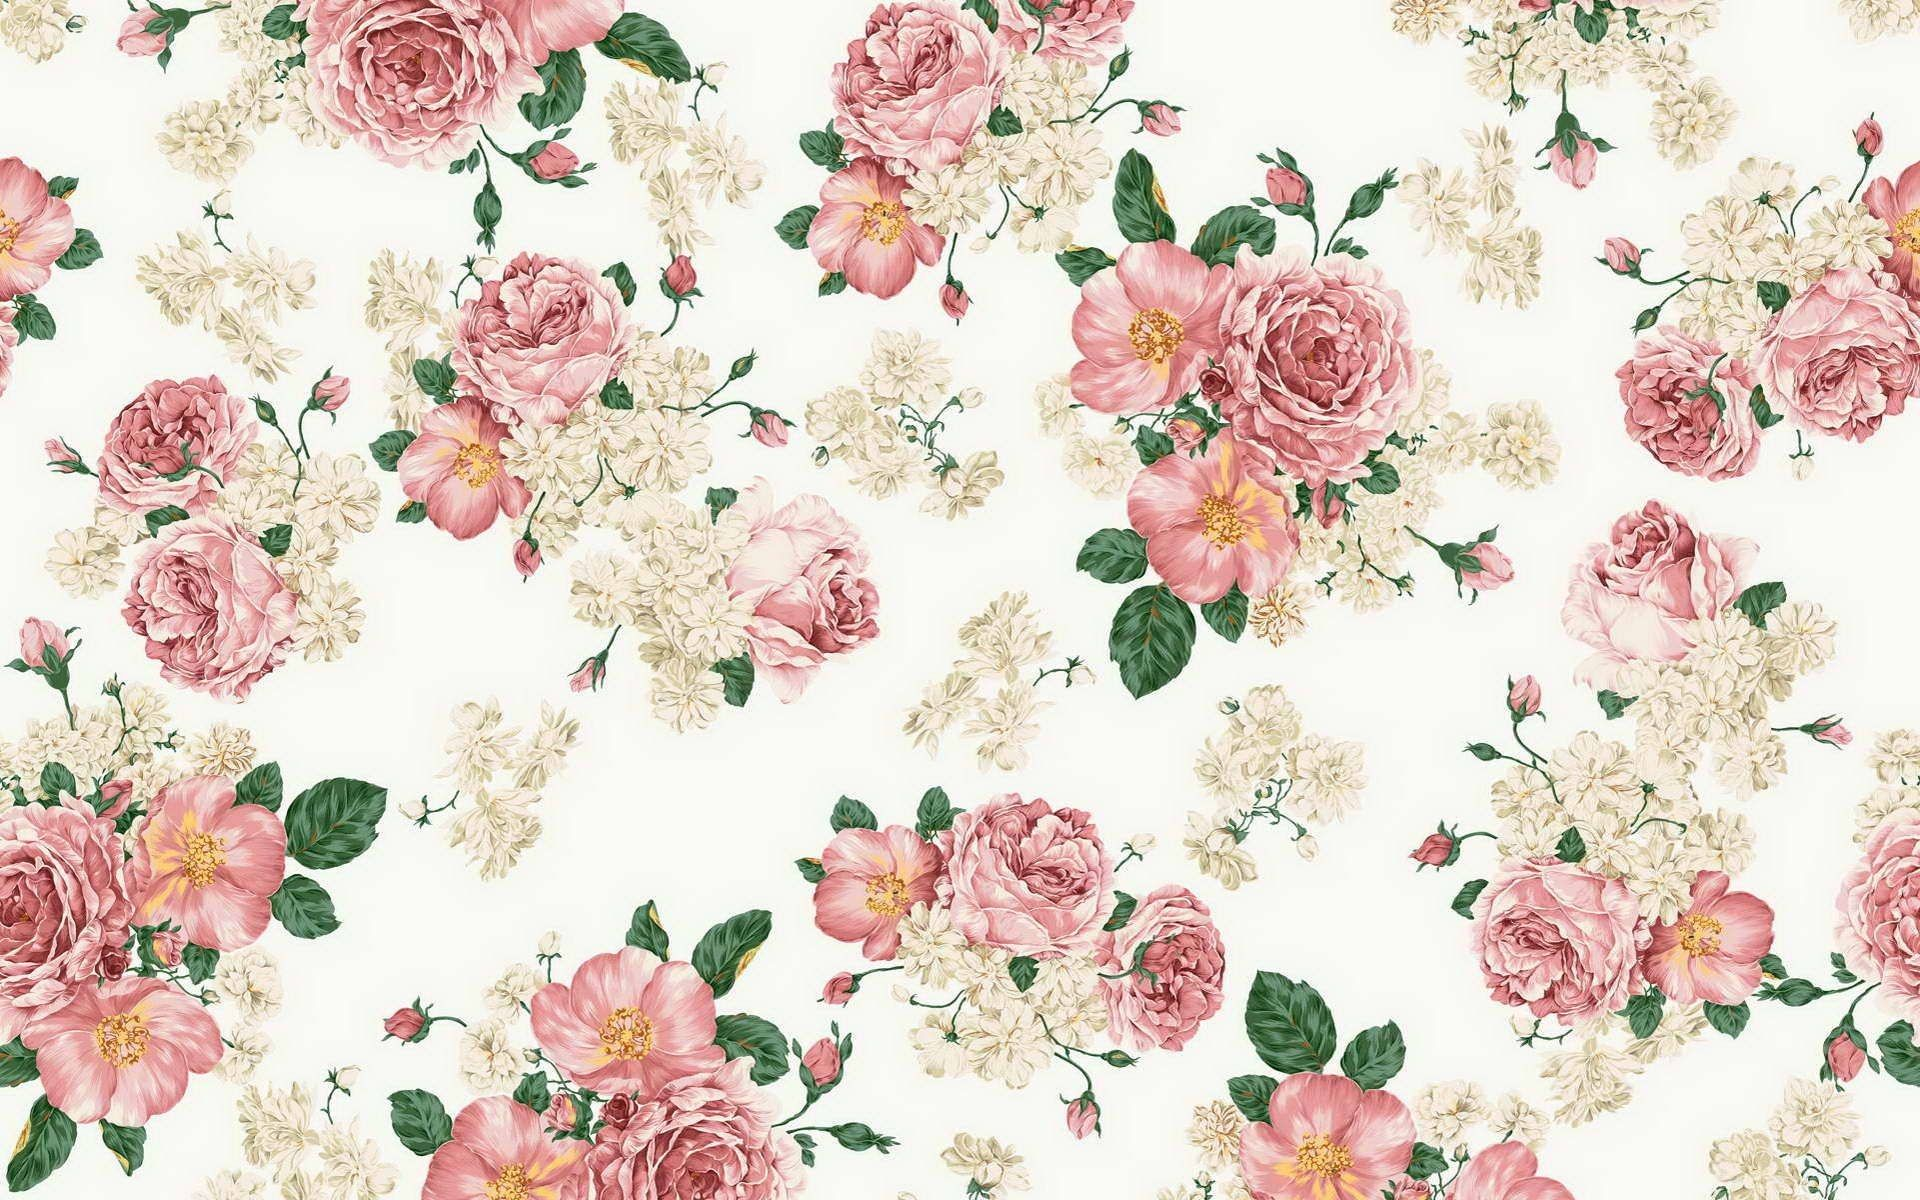 Country Floral Wallpaper Patterns Google Search Vintage